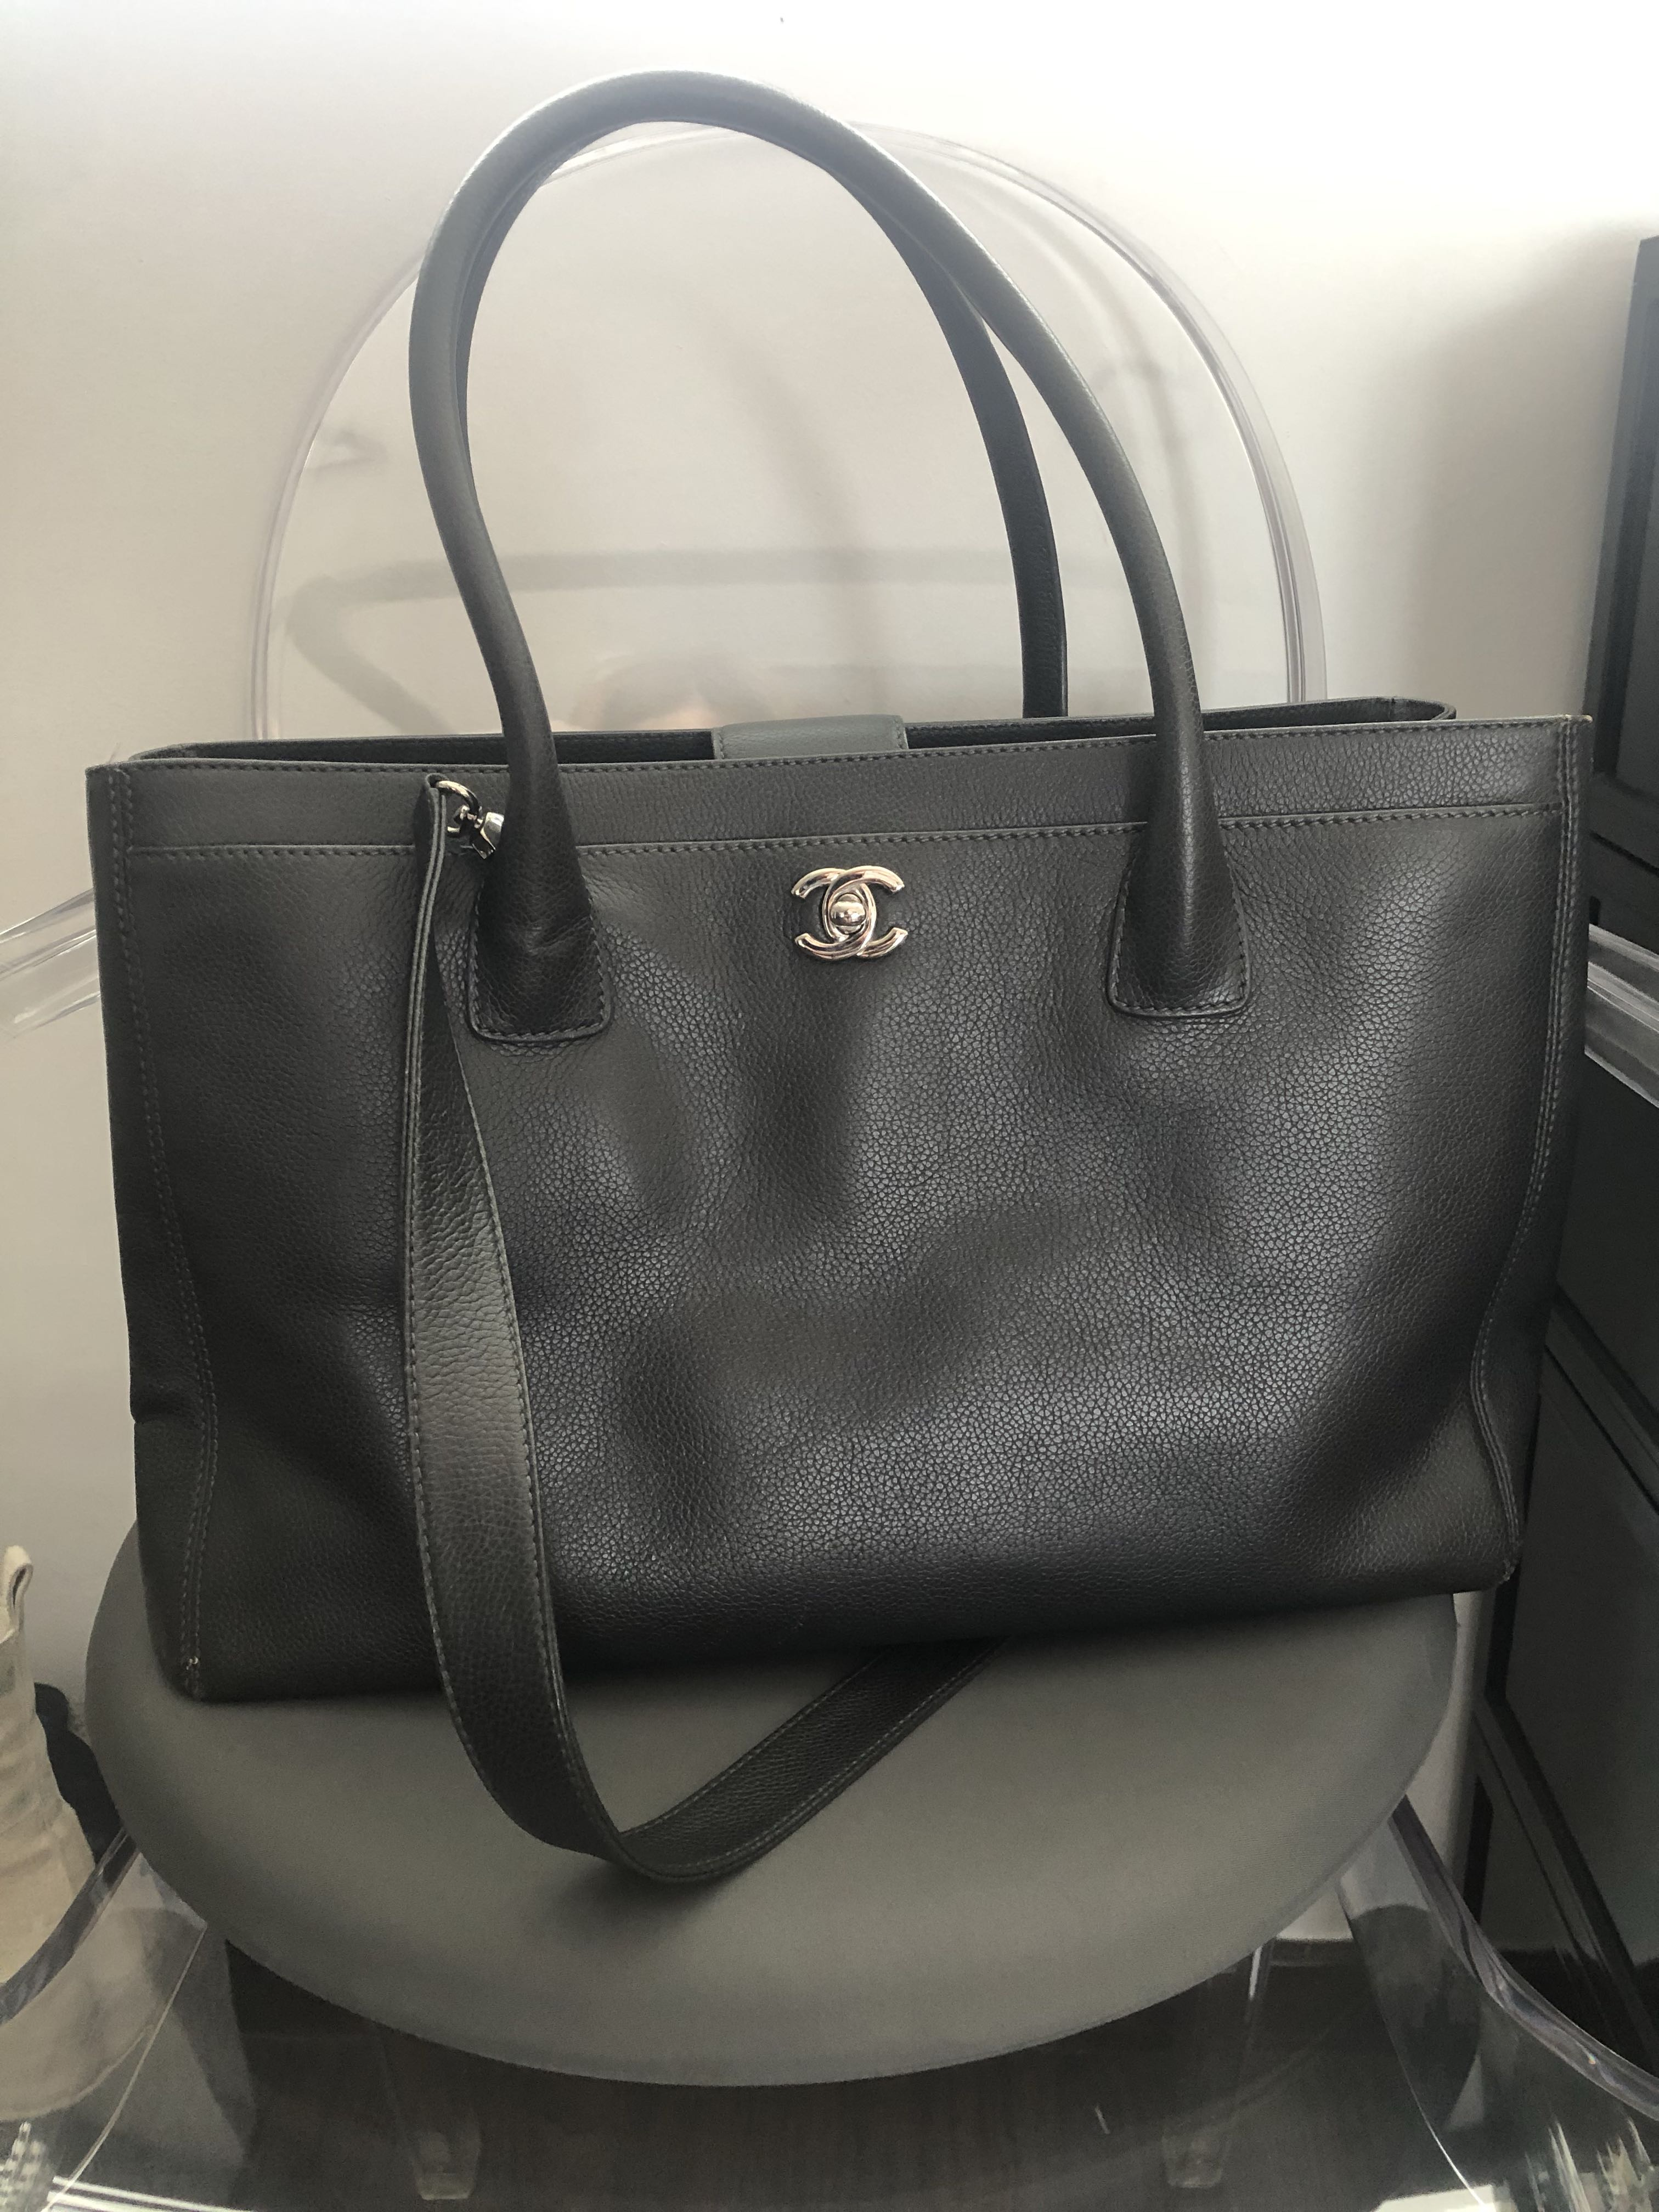 08355a7dd91d Chanel executive cerf tote, Women's Fashion, Bags & Wallets, Handbags on  Carousell